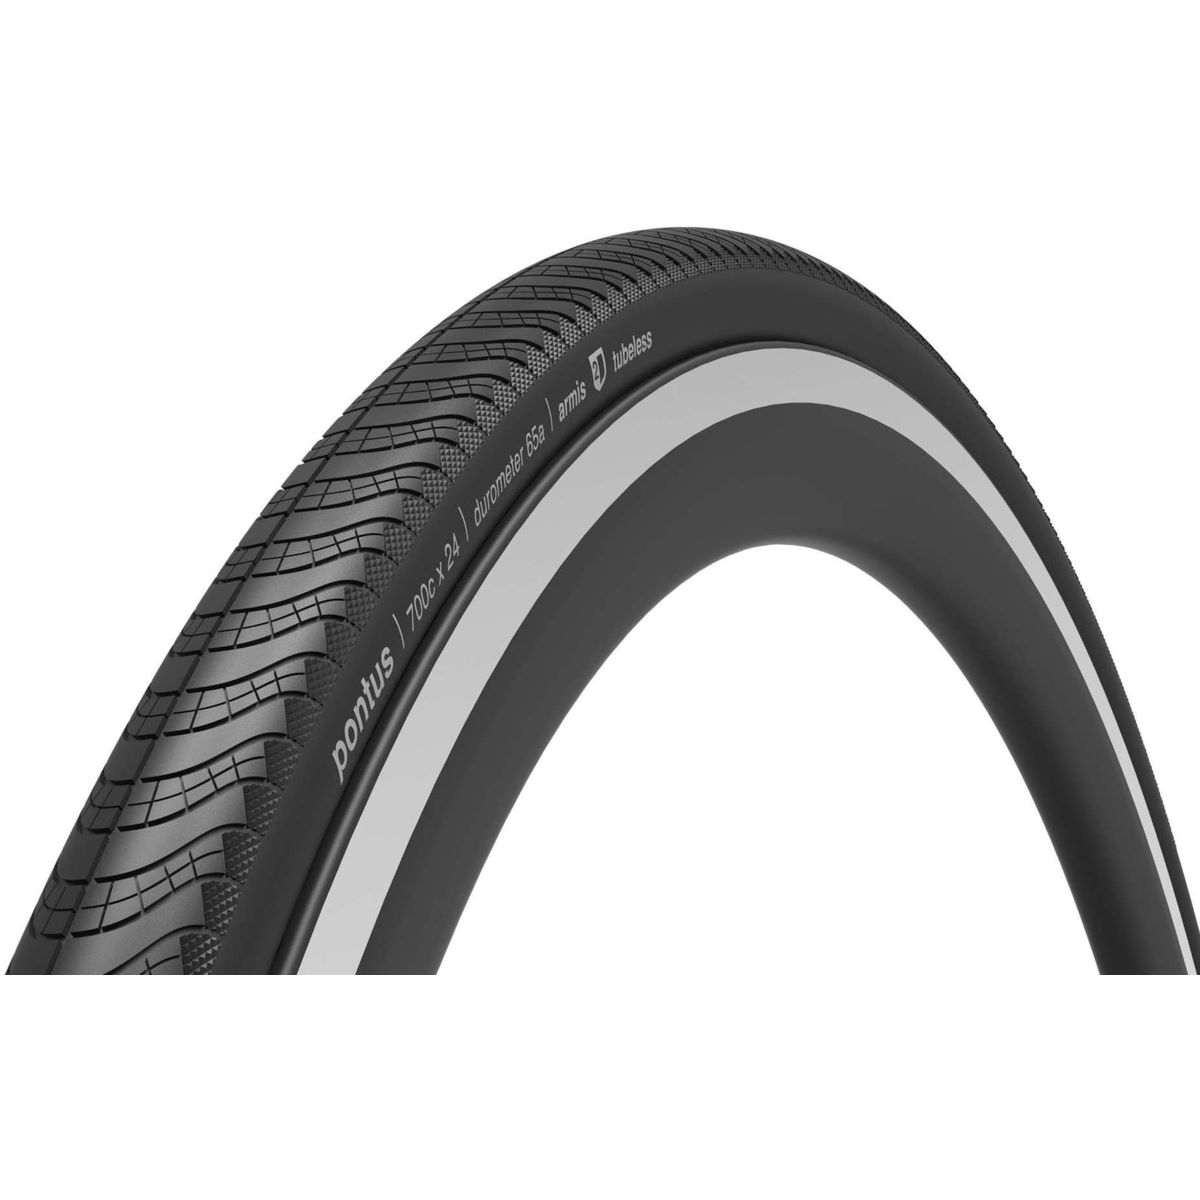 Ere Research Ere Research Pontus Tubeless 120TPI Folding Road Tyre   Tyres